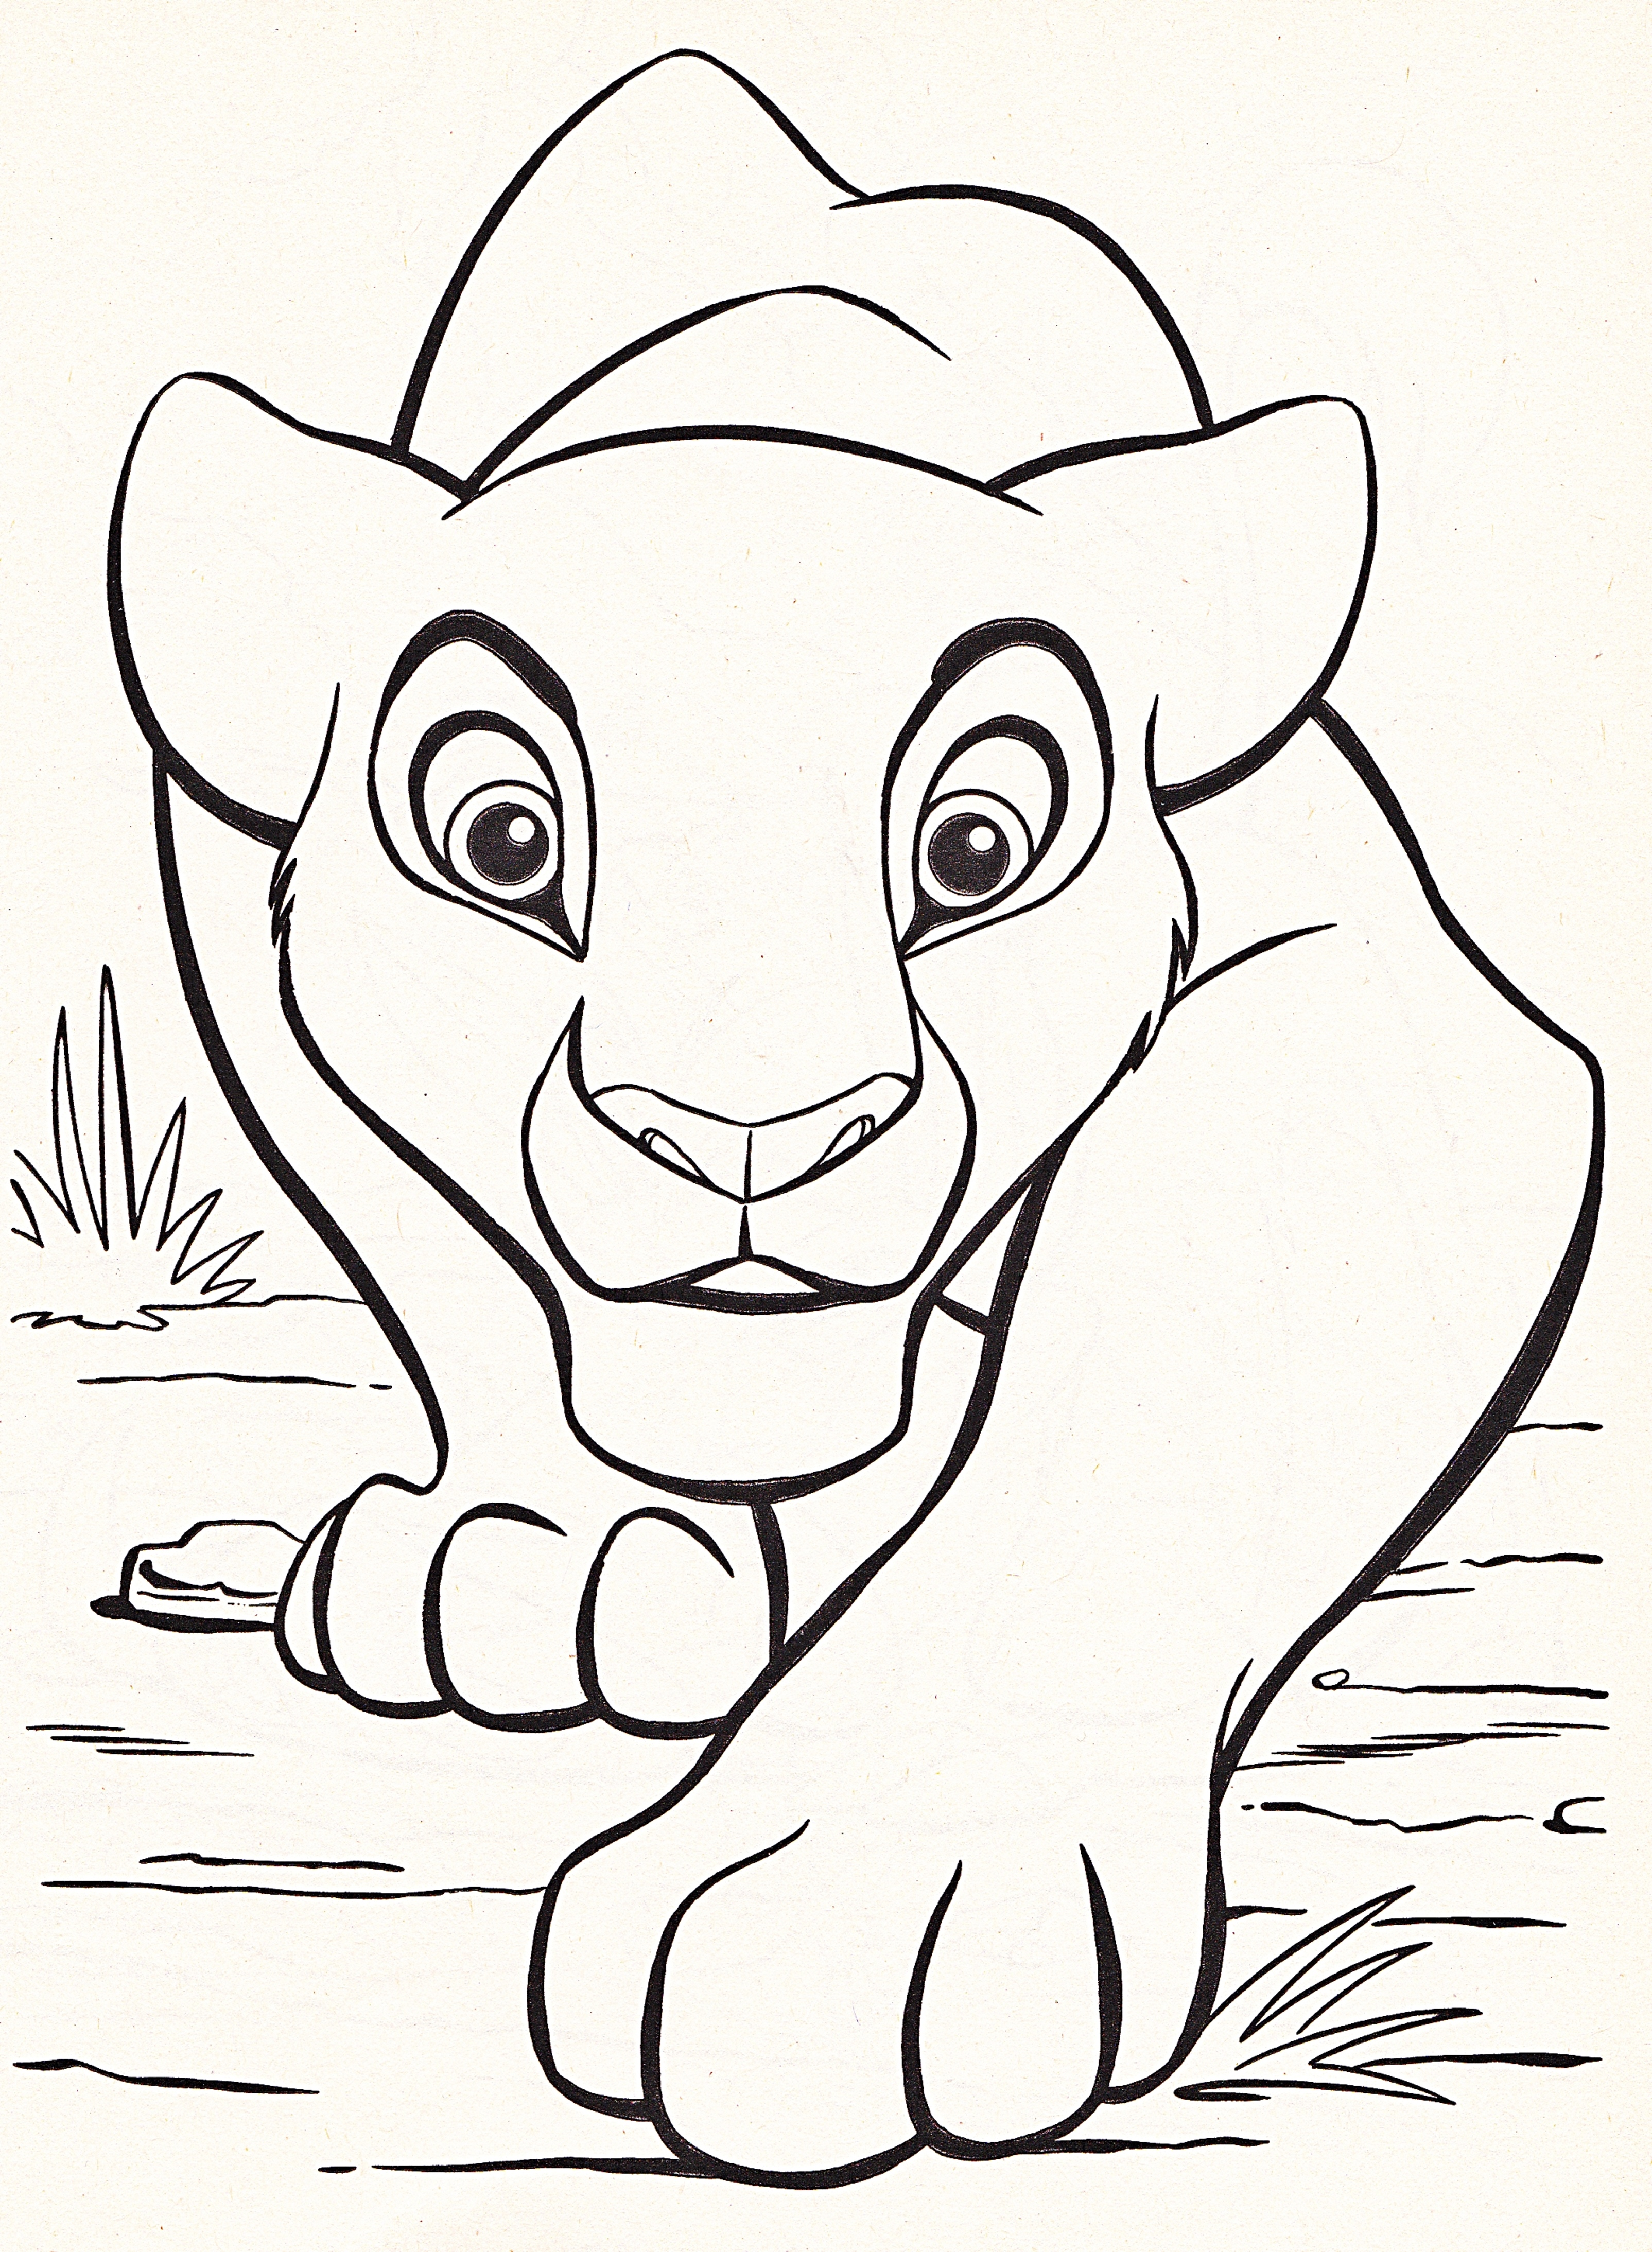 Disney Drawing For Kids at GetDrawings.com | Free for personal use ...